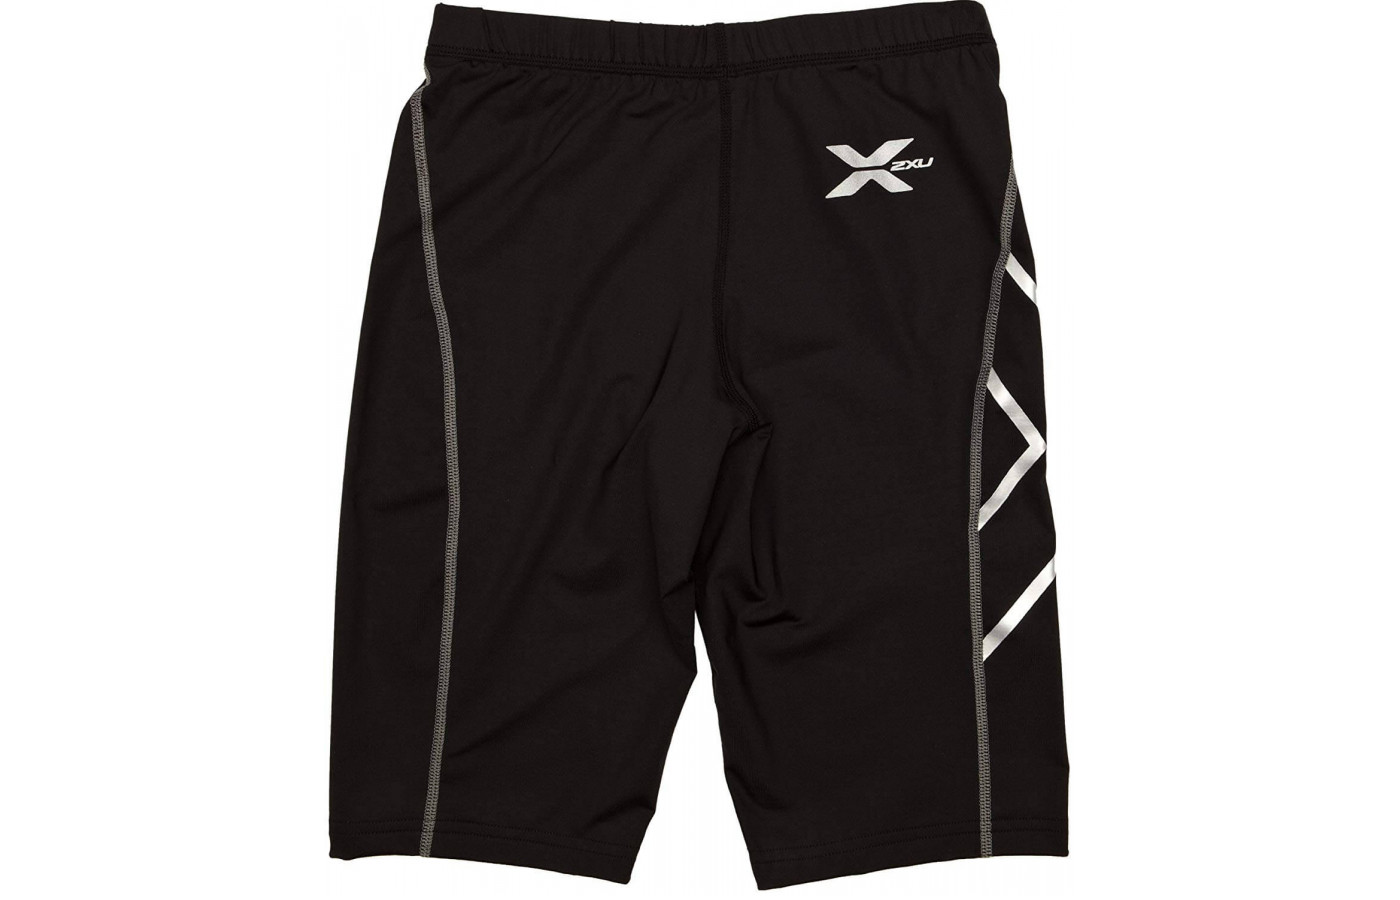 e2ec03b5a7cb4 The 2XU Compression Shorts are made from a combination of nylon and  elastane.